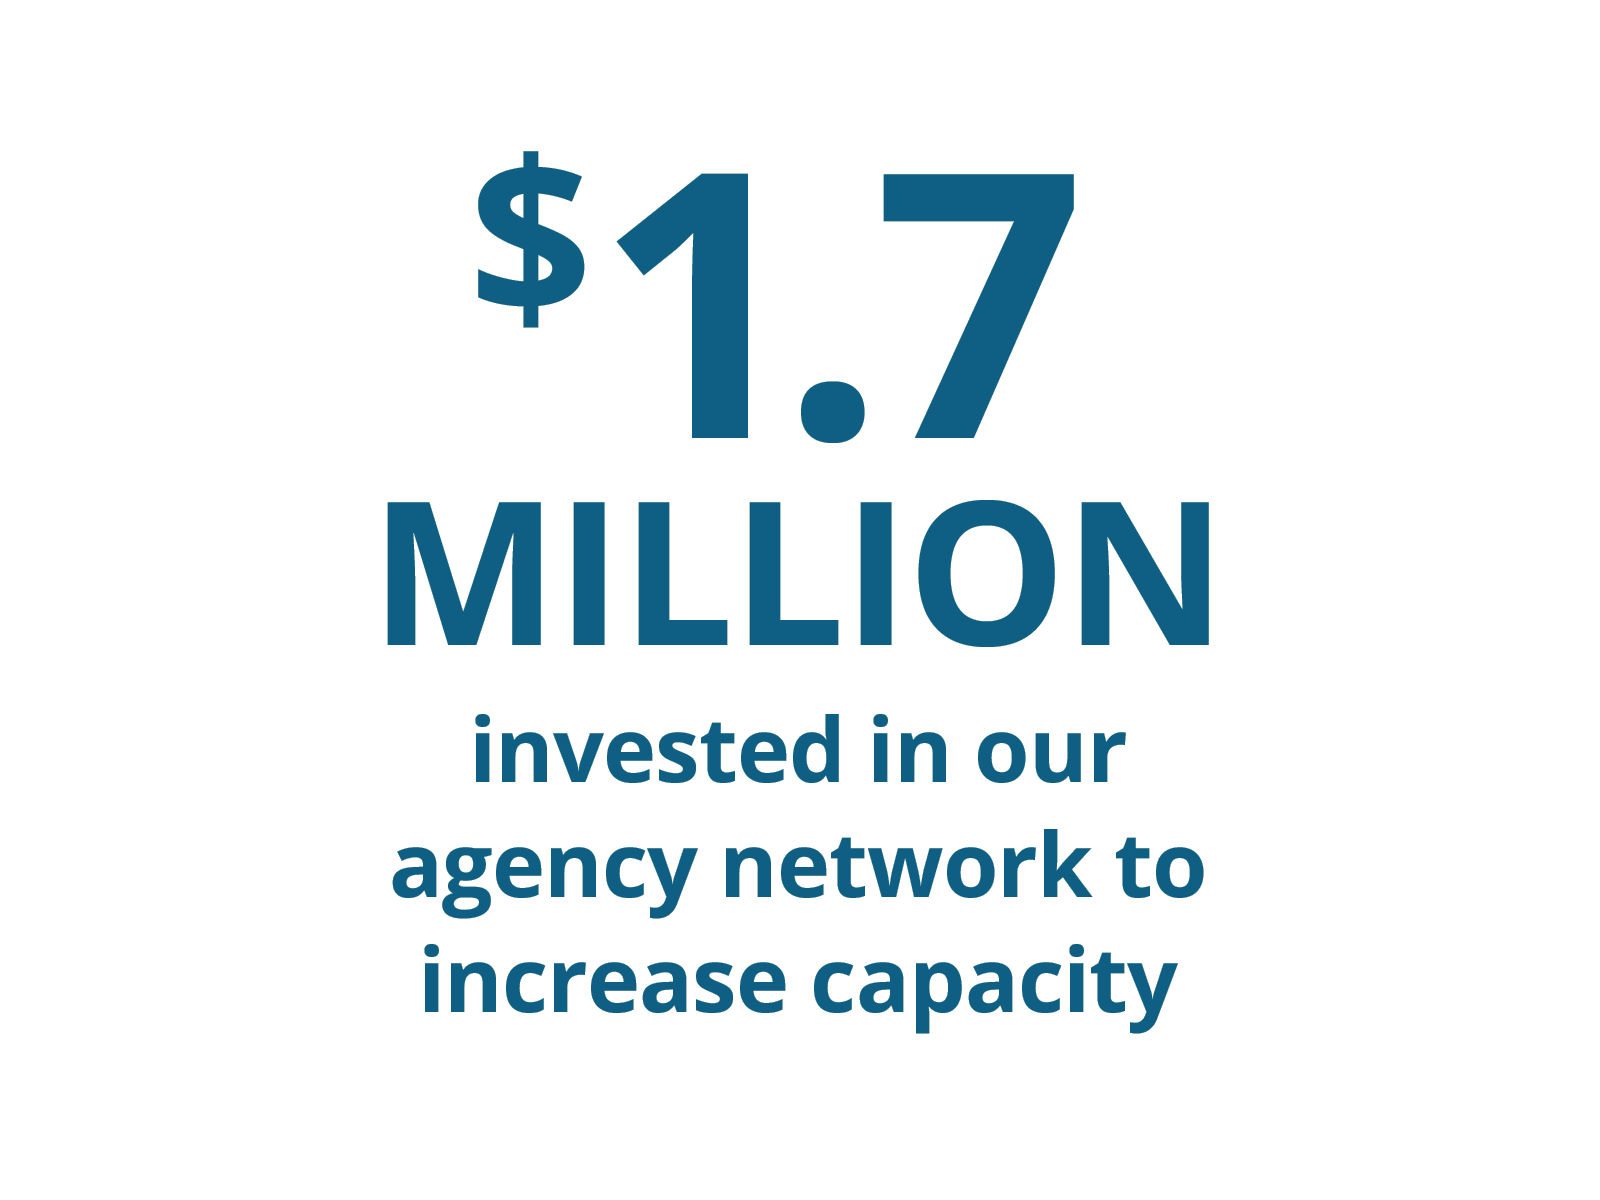 $1.7 million invested in our agency network to increase capacity